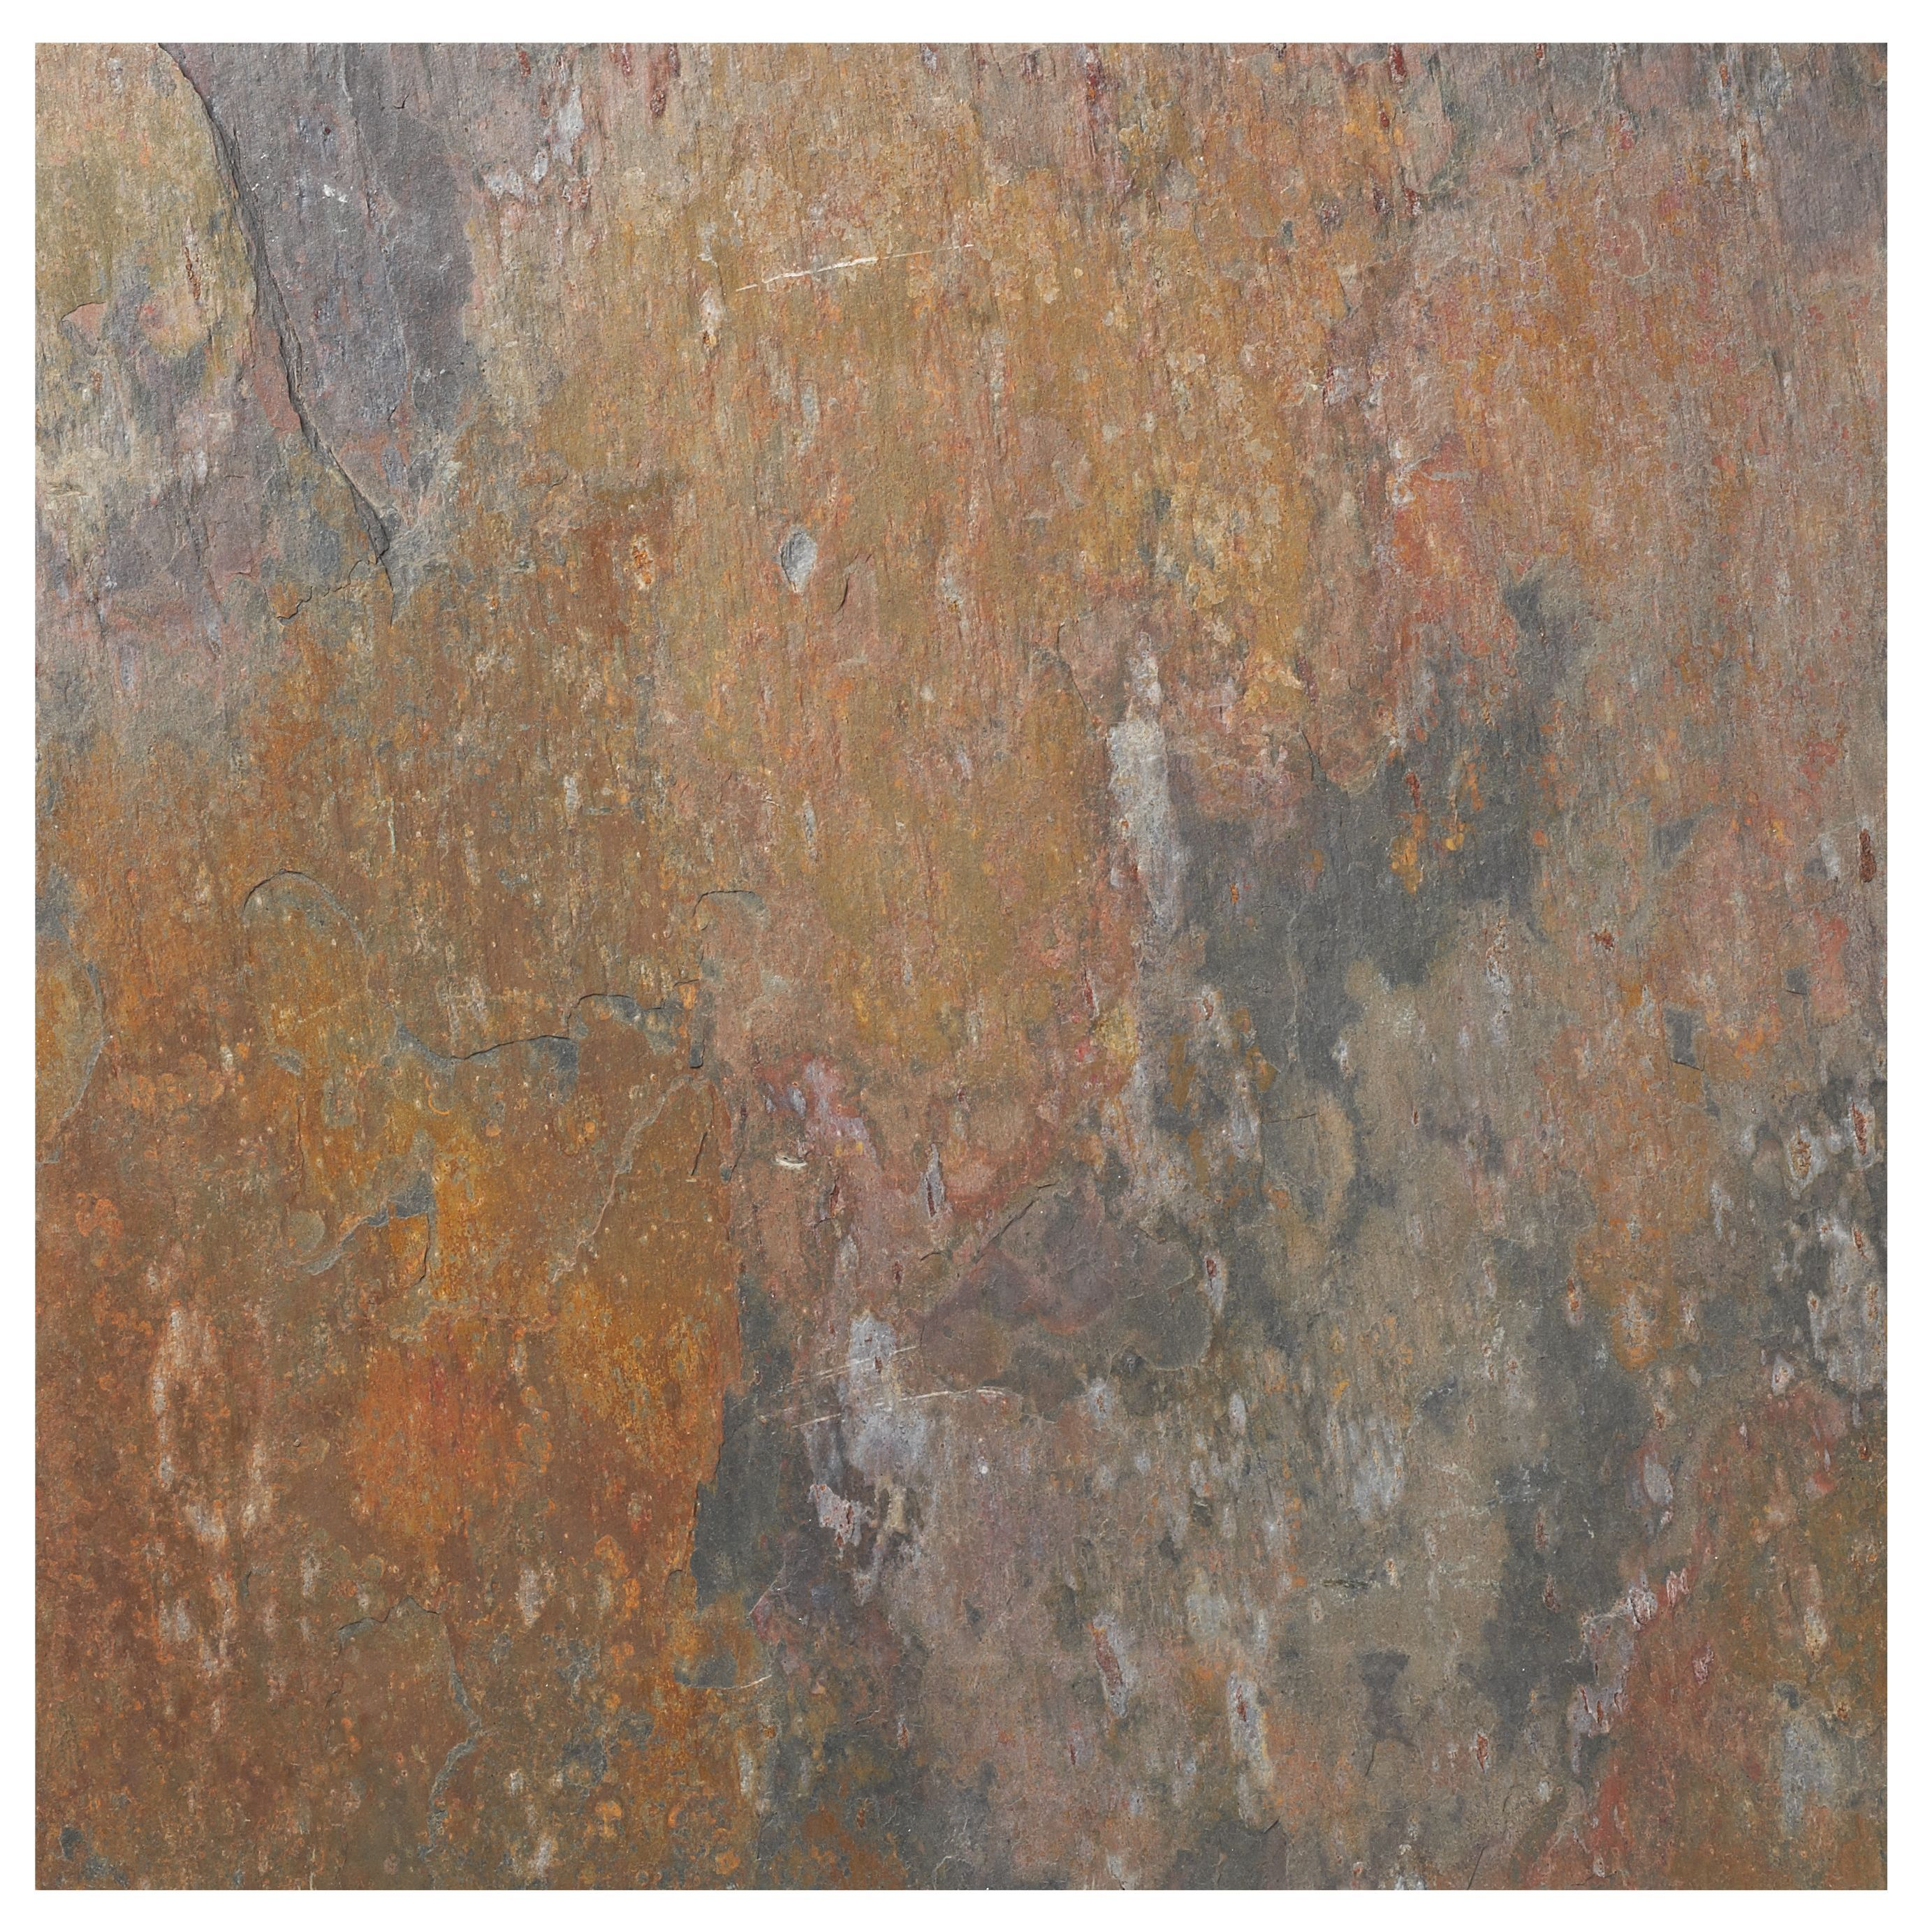 Natural Travertine Mosaic Tile L 300mm W 300mm: For Hallway.....Colours Brown & Grey Slate Wall & Floor